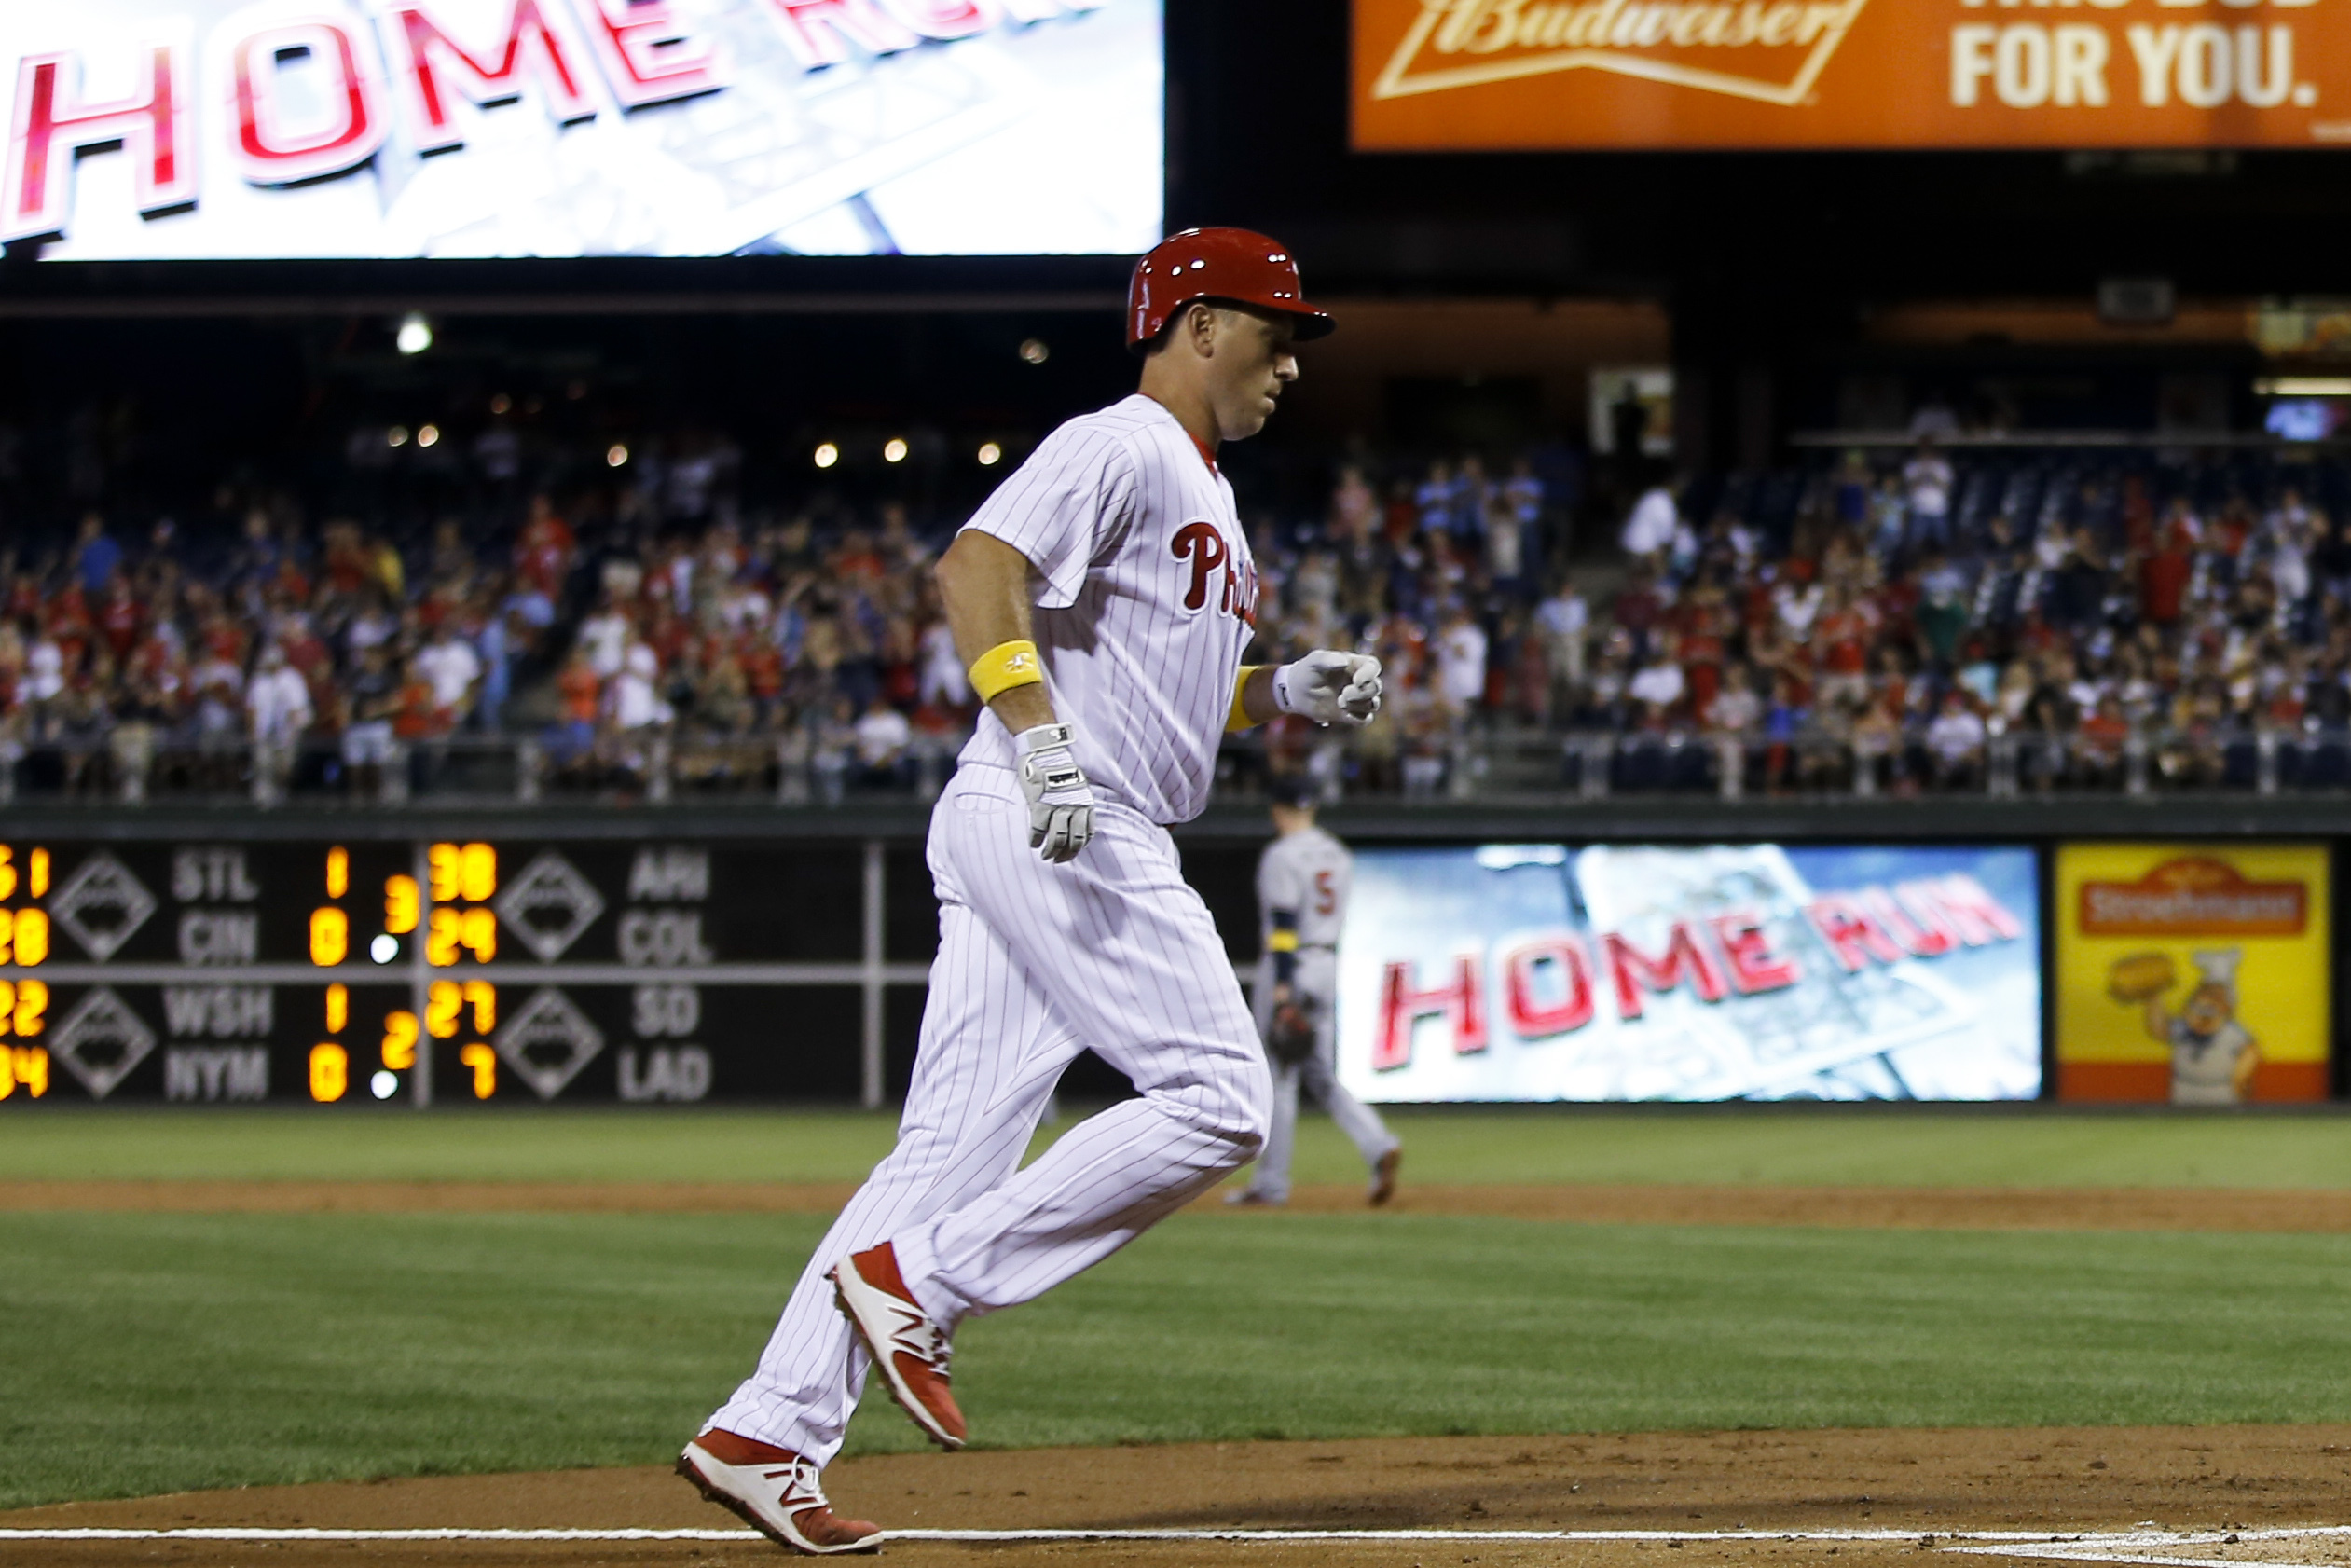 Philadelphia Phillies' A.J. Ellis rounds the bases after hitting a three-run home run off Atlanta Braves starting pitcher Joel De La Cruz during the second inning of a baseball game, Friday, Sept. 2, 2016, in Philadelphia. (AP Photo/Dake Kang)